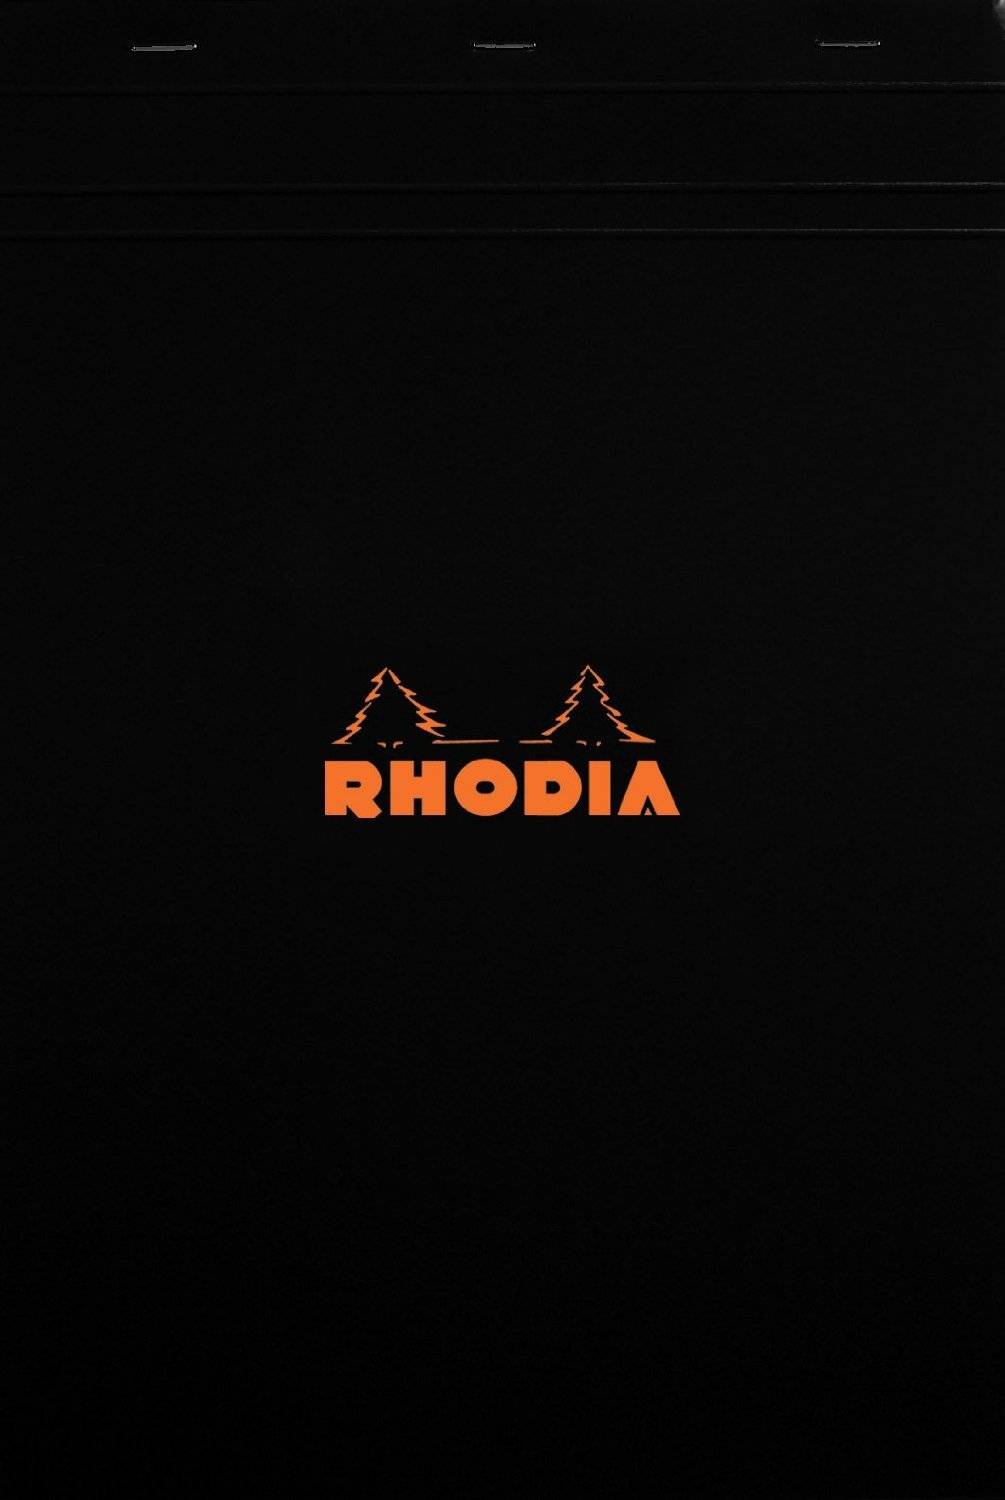 Rhodia Notepads Black Graph 80 Sheet 8.25x11.75, Pack of 5 by Rhodia (Image #1)